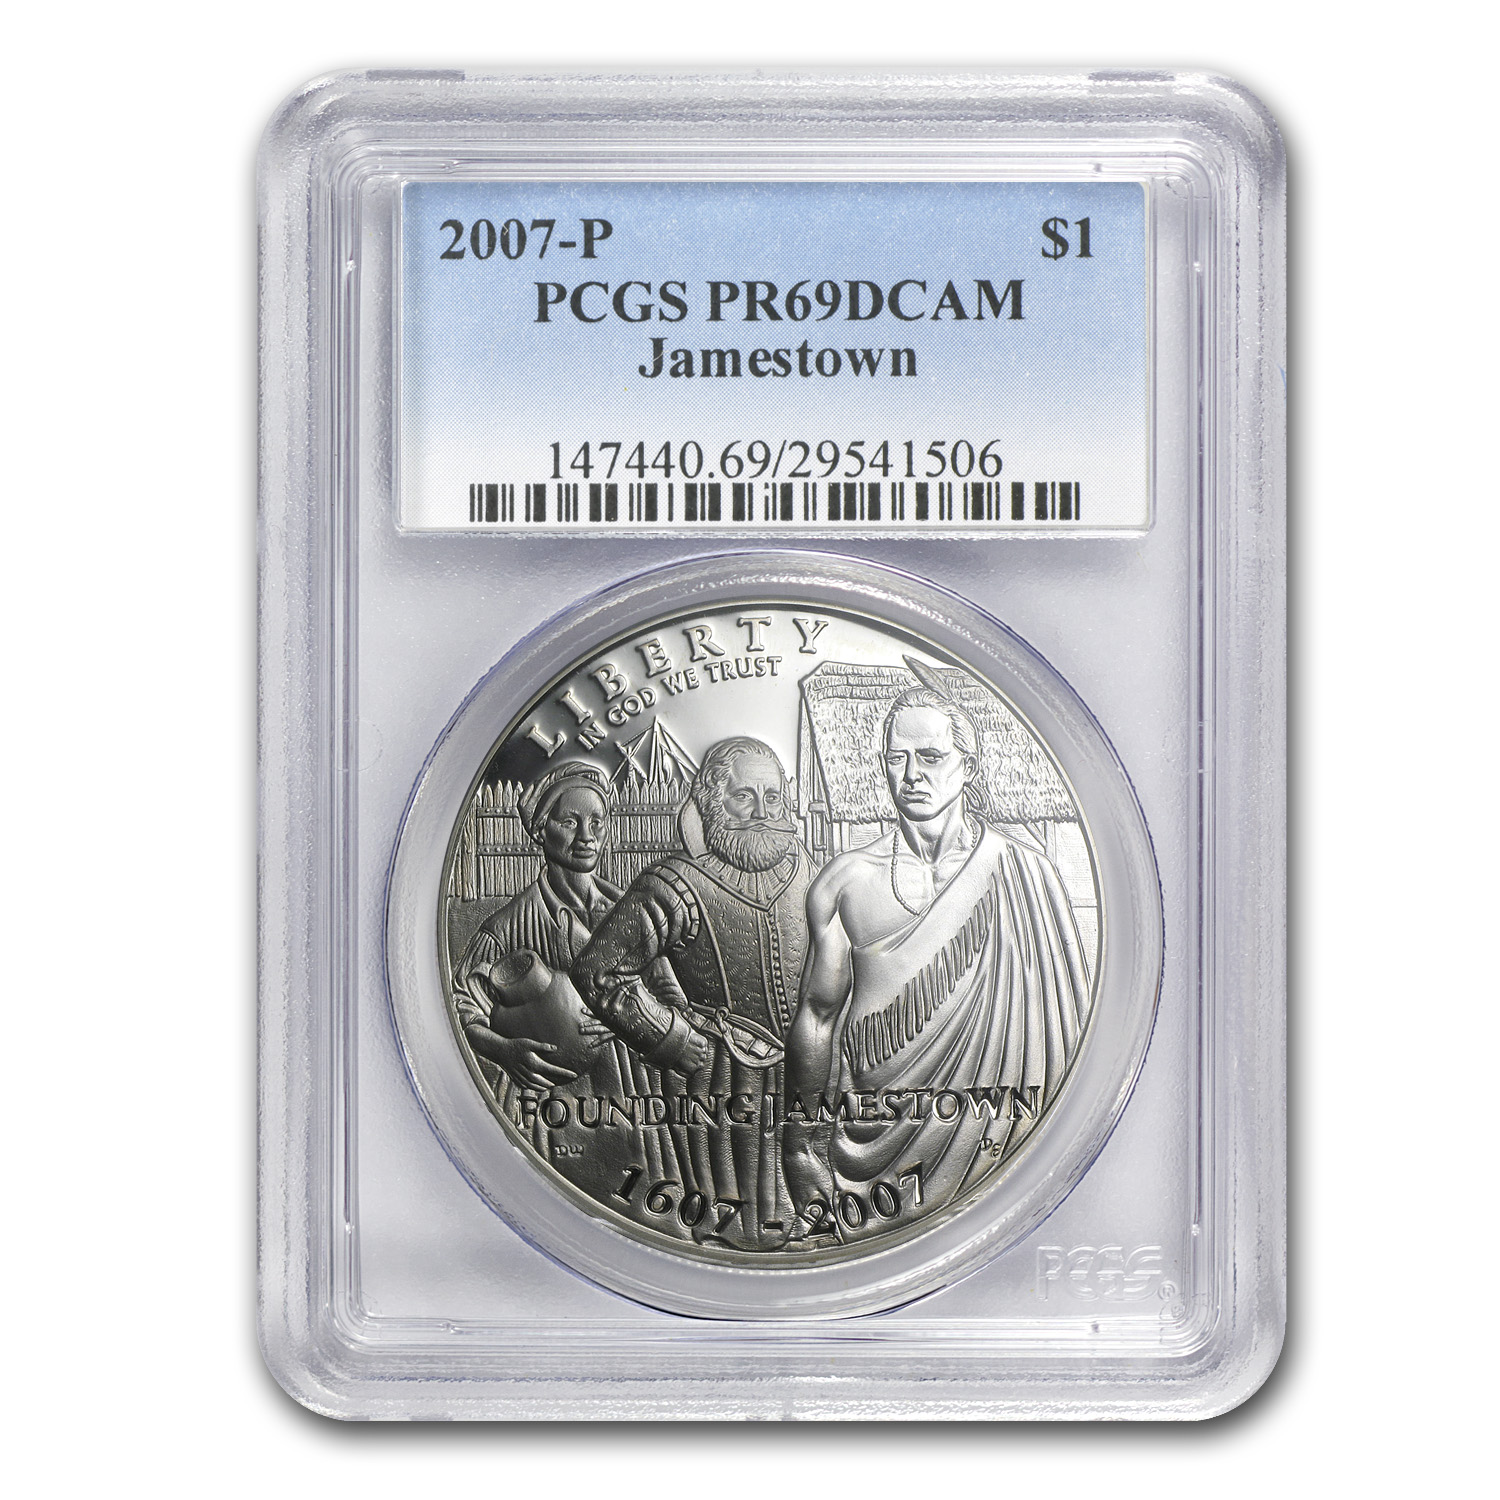 2007 P Jamestown 400th Anniv 1 Silver Commem Pr 69 Pcgs